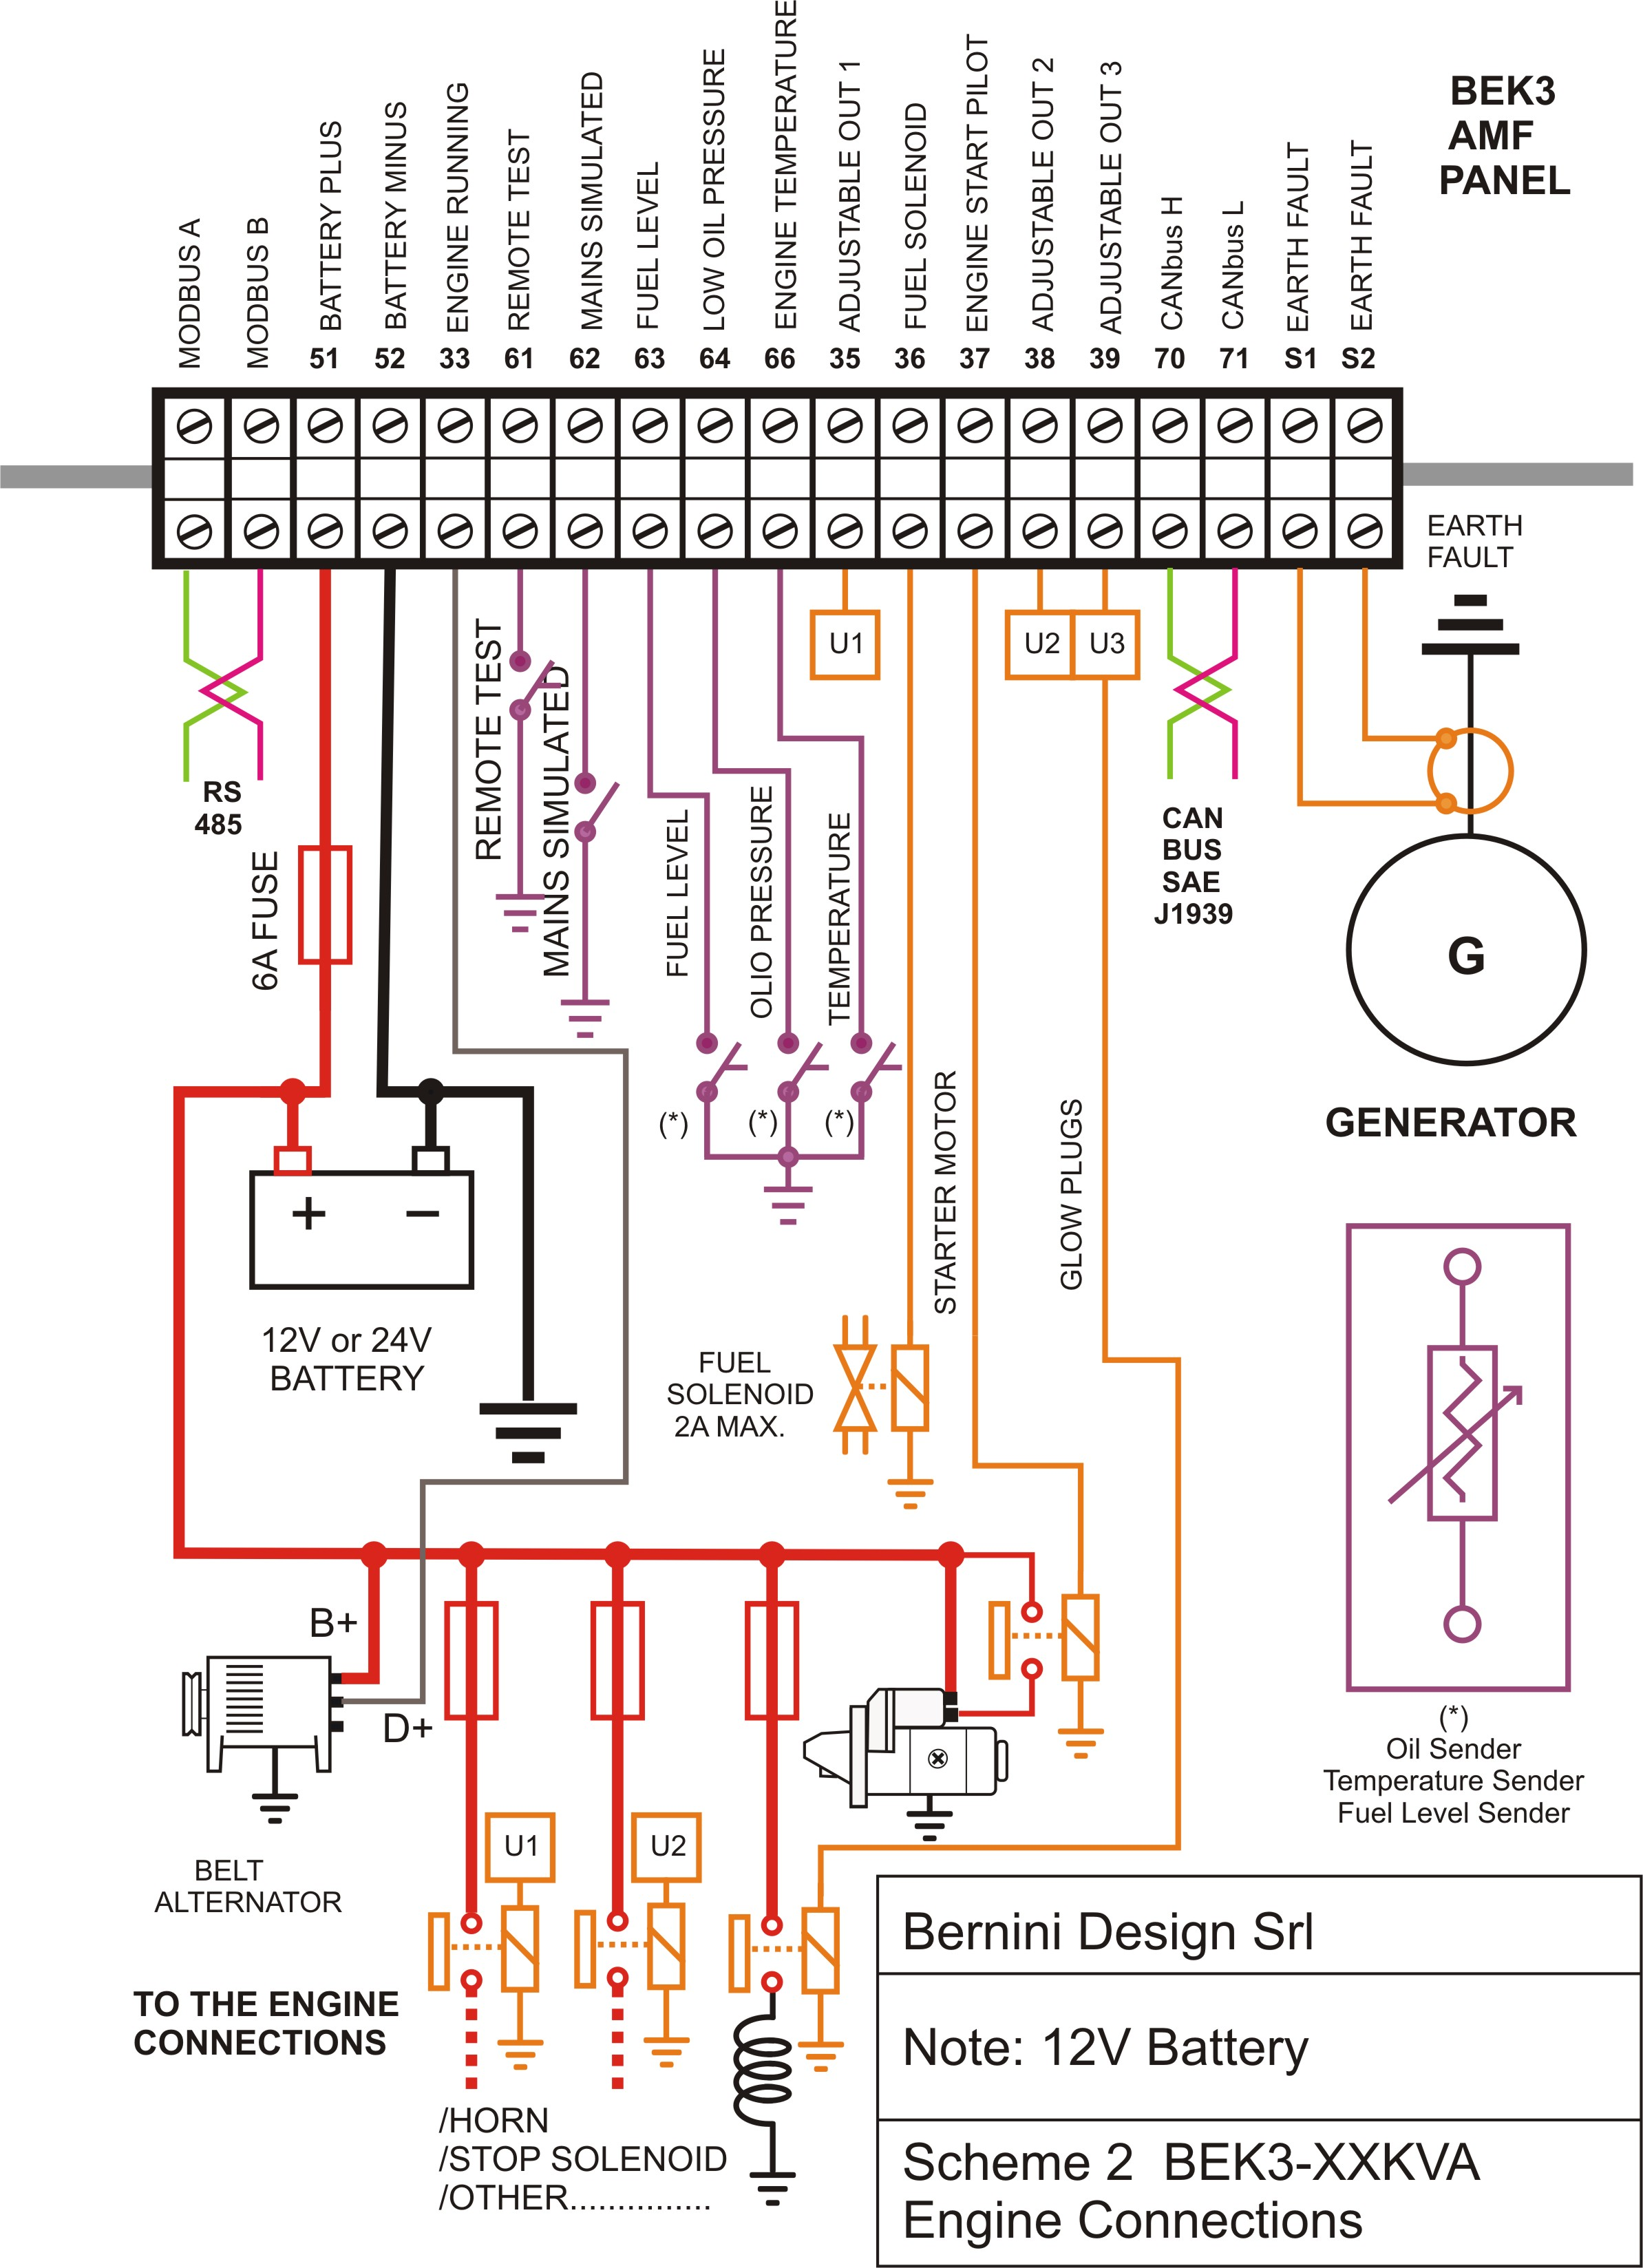 Diesel Generator Control Panel Wiring Diagram on commercial fire alarm wiring